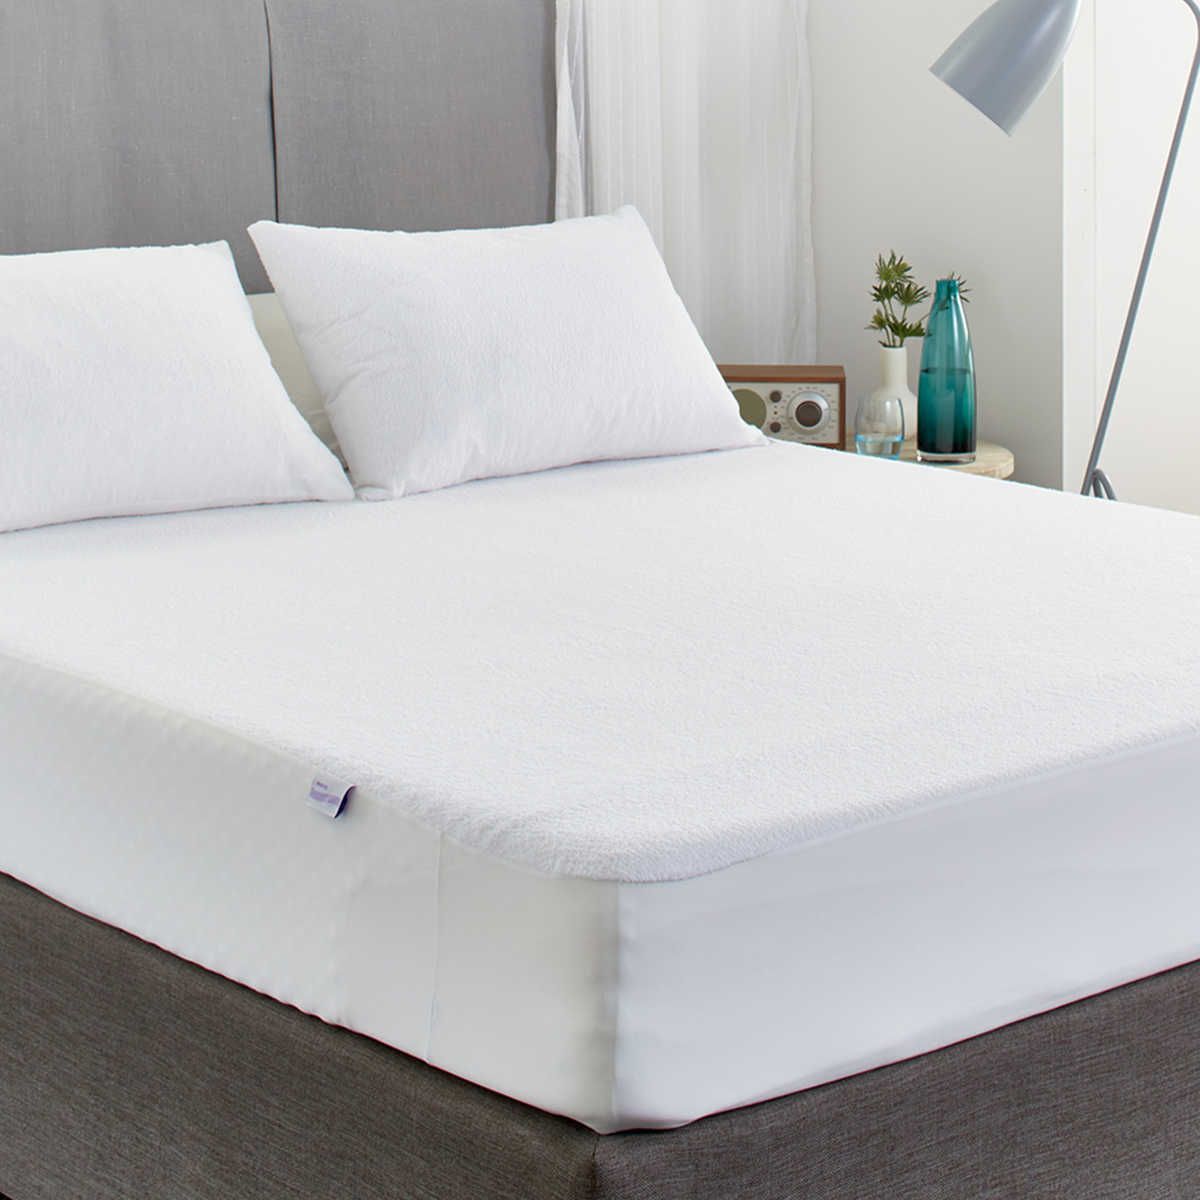 King Single Mattress Protector Protect A Bed Cotton Terry Fitted Mattress Protector